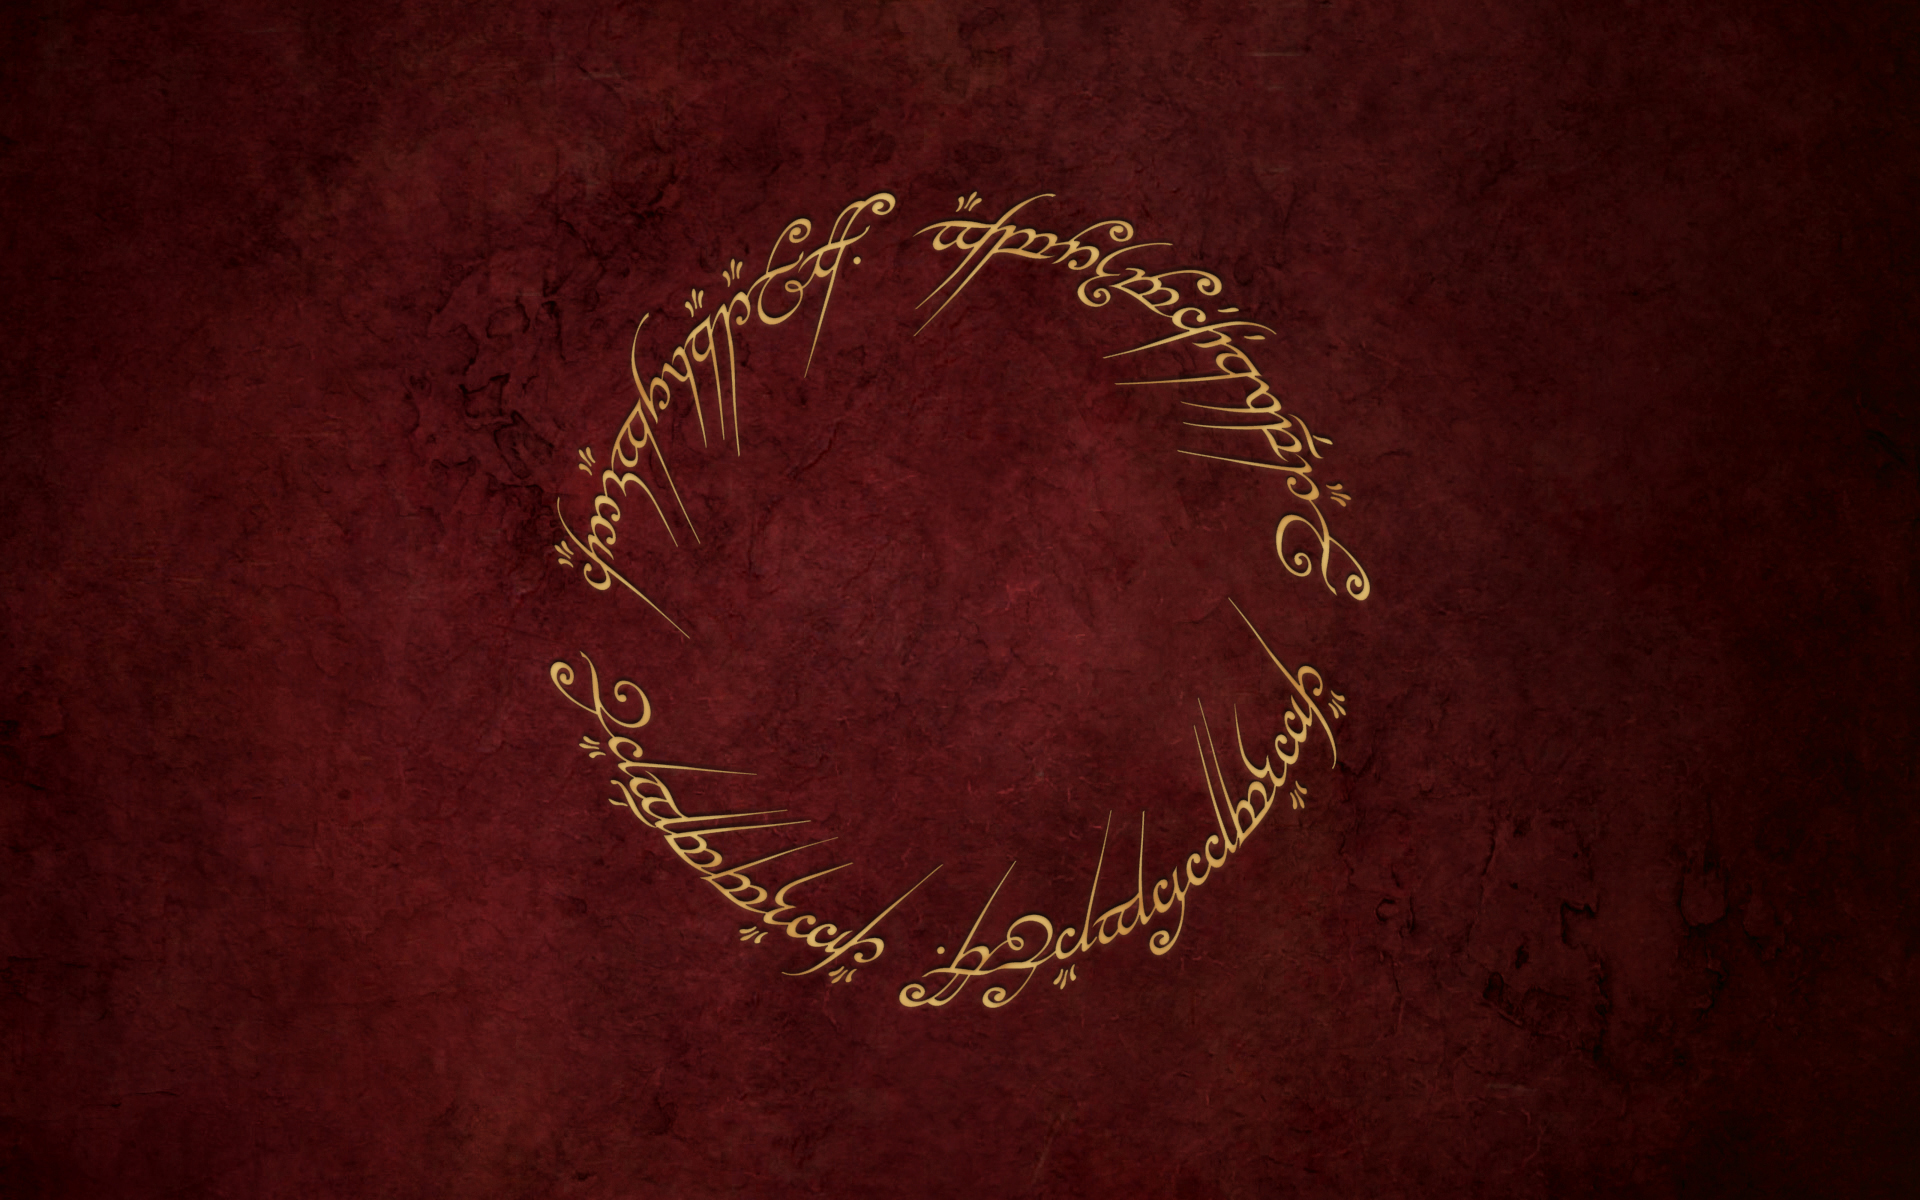 wallpapers room com   one ring red by louiemantia 1920x1200 Wallpaper room com